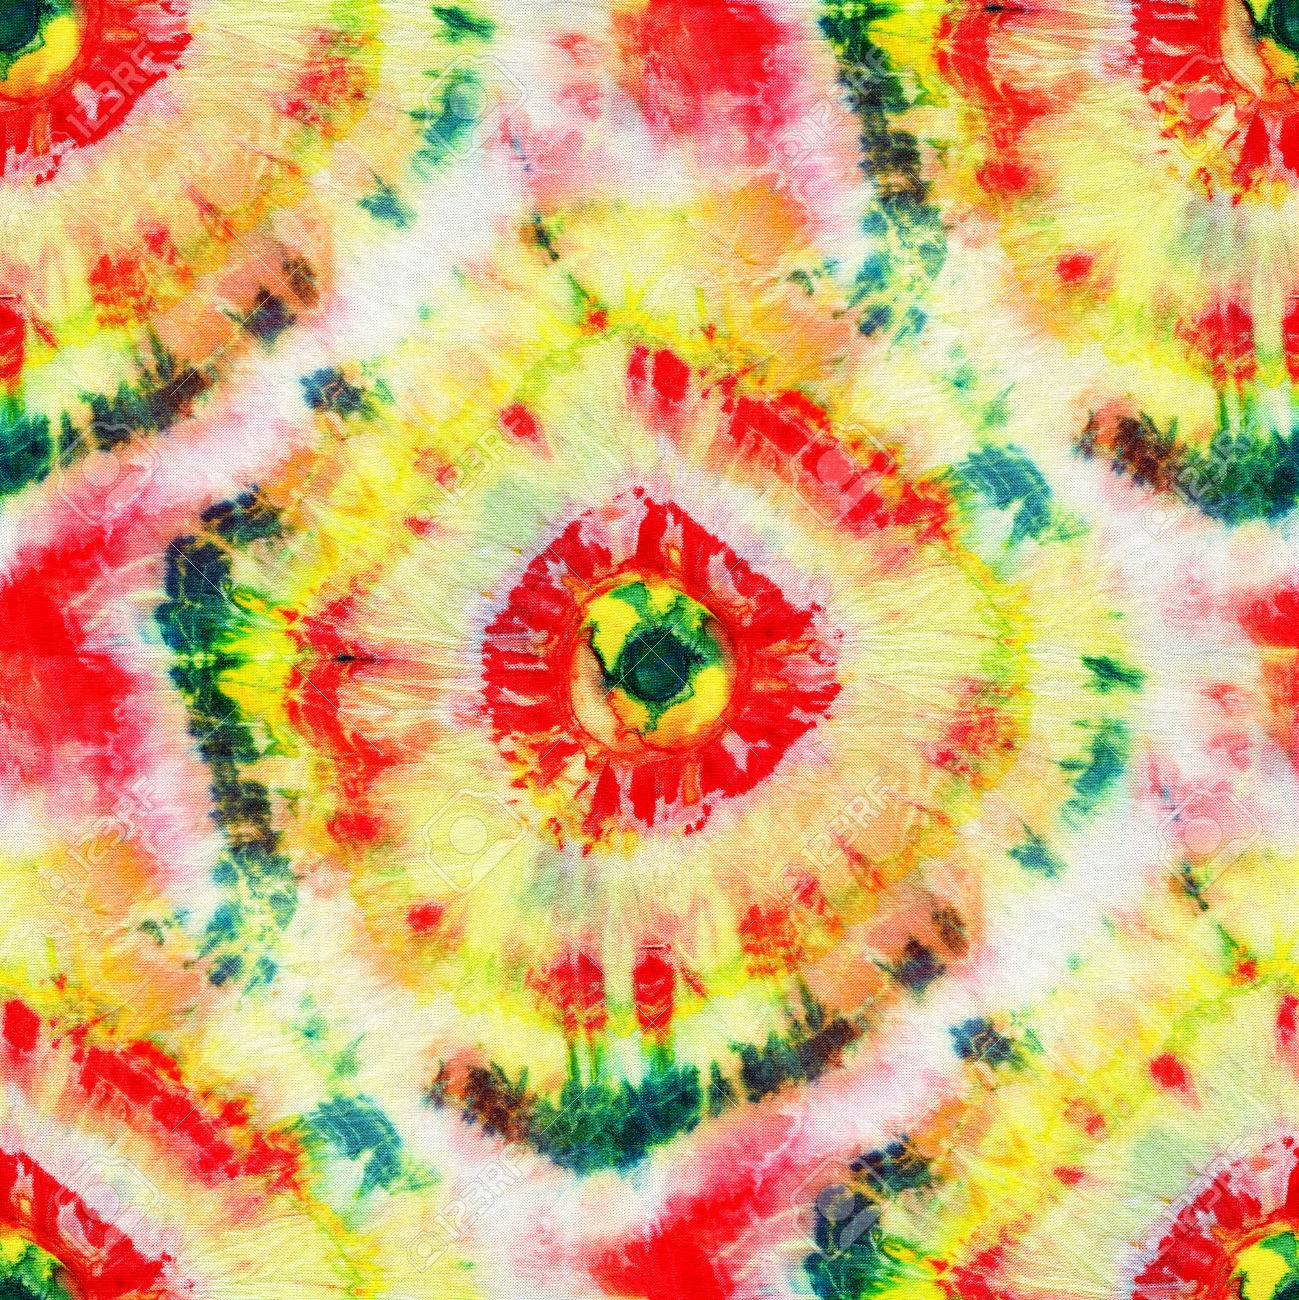 8e0865ec7243 Seamless tie-dye pattern of red, green and yellow color on white silk.